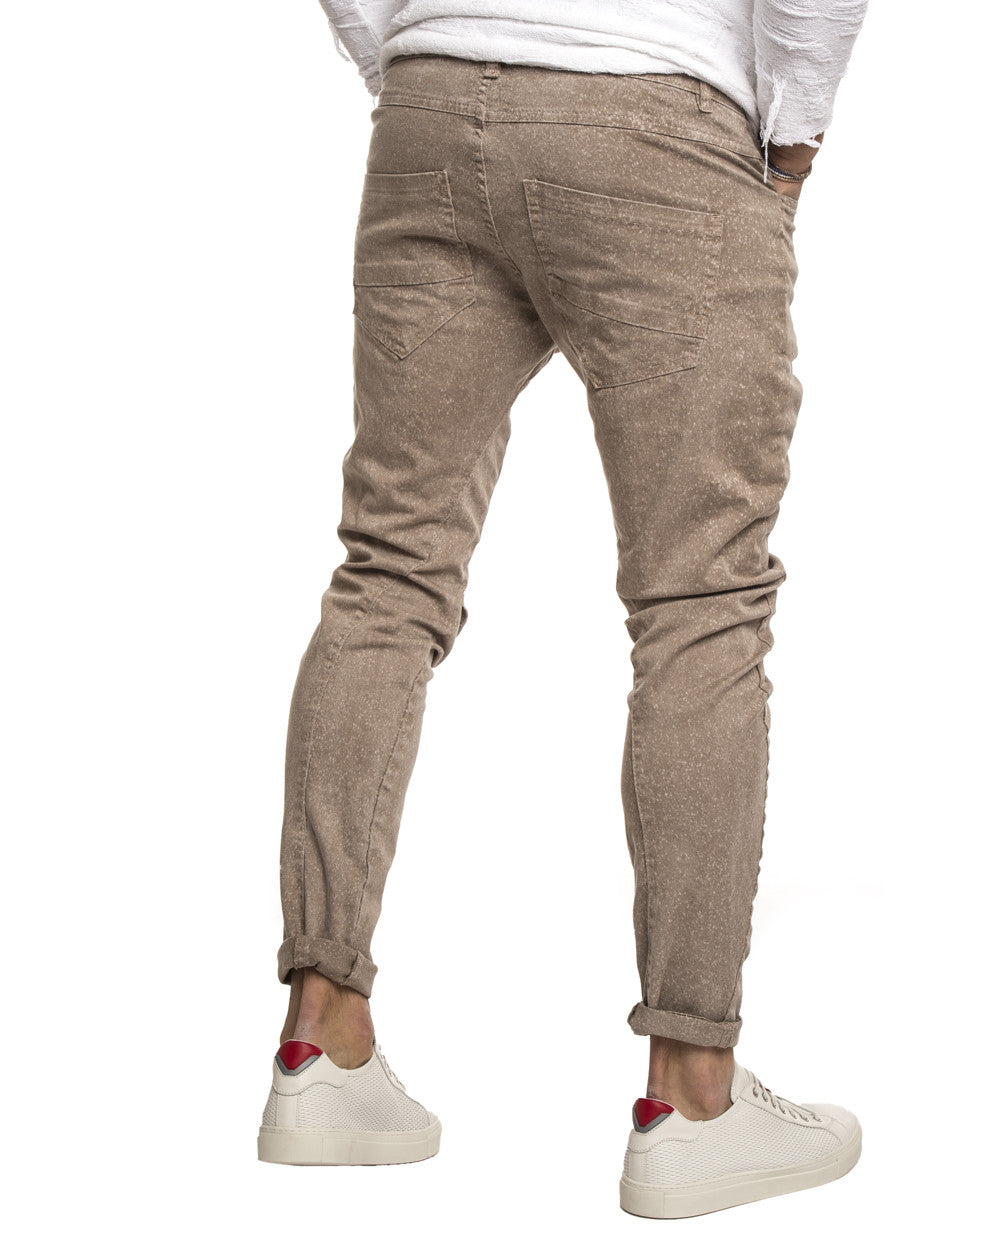 MEN'S CLOTHING | BEIGE GABARDIN 2.0 PANTS | GABARDINE PANTS FOR MEN | COTTON | MADE IN ITALY | SLIM FIT | NOHOW STREETWEAR COLLECTION | NOHOW